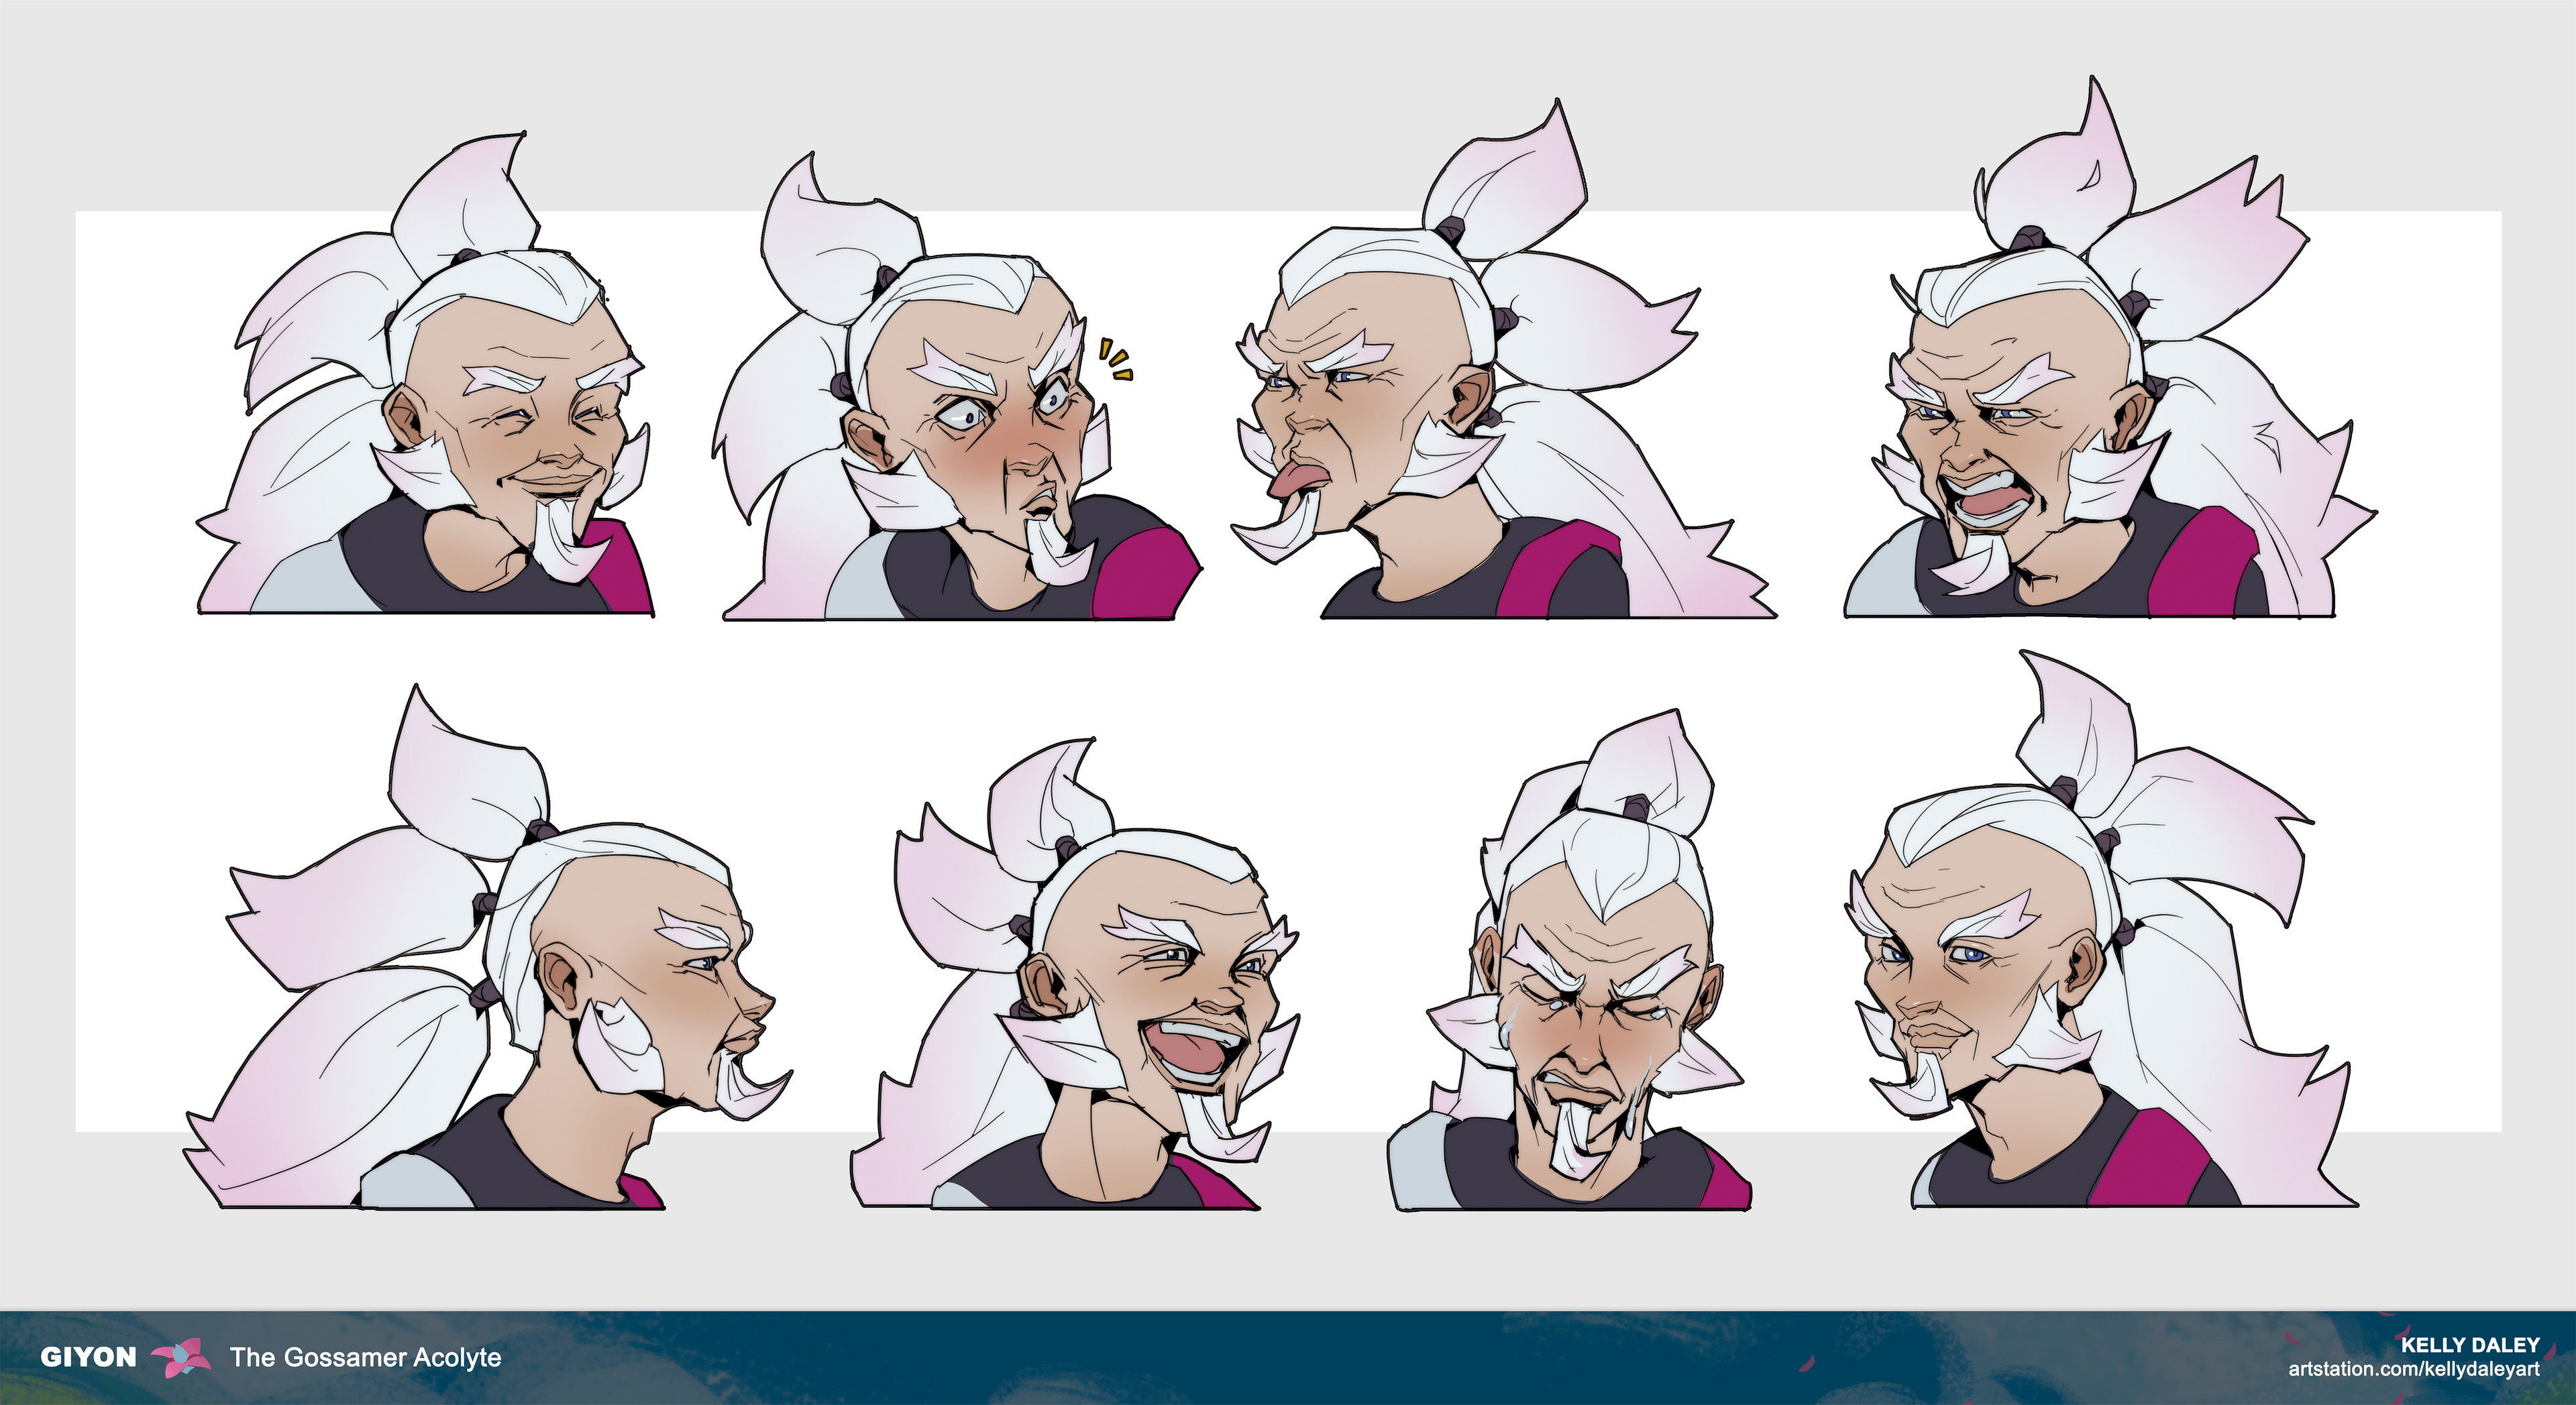 Expression exploration! This was fun especially because I already knew who GIyon was as a person. I could easily envision him making each of these faces because I did the early brunt work of solidifying his personality.